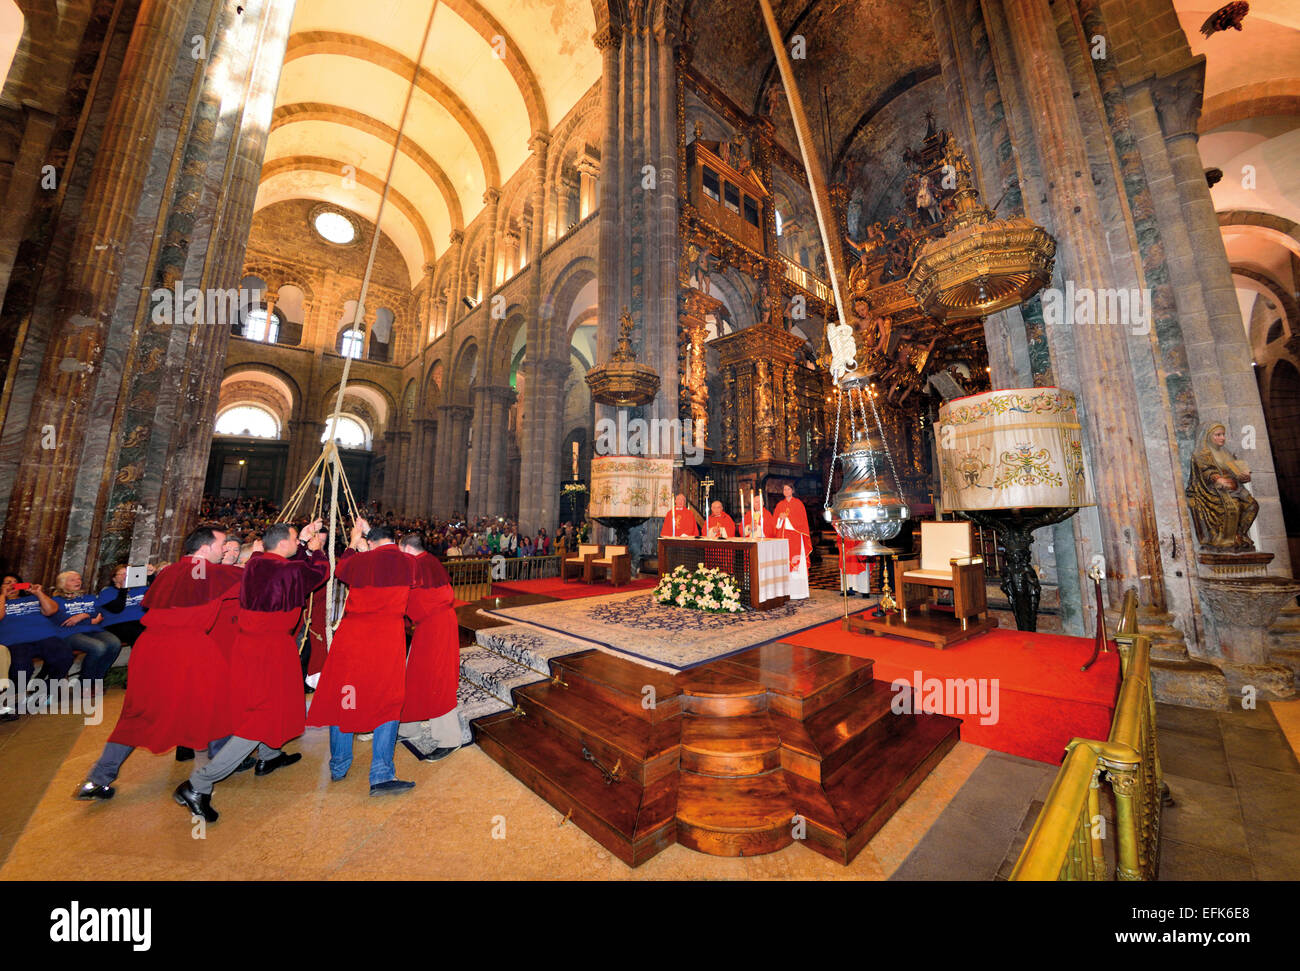 Spain, Galicia: Acolytes swinging the 'Botafumeiro'  during the mass in the legendary Cathedral of Santiago - Stock Image